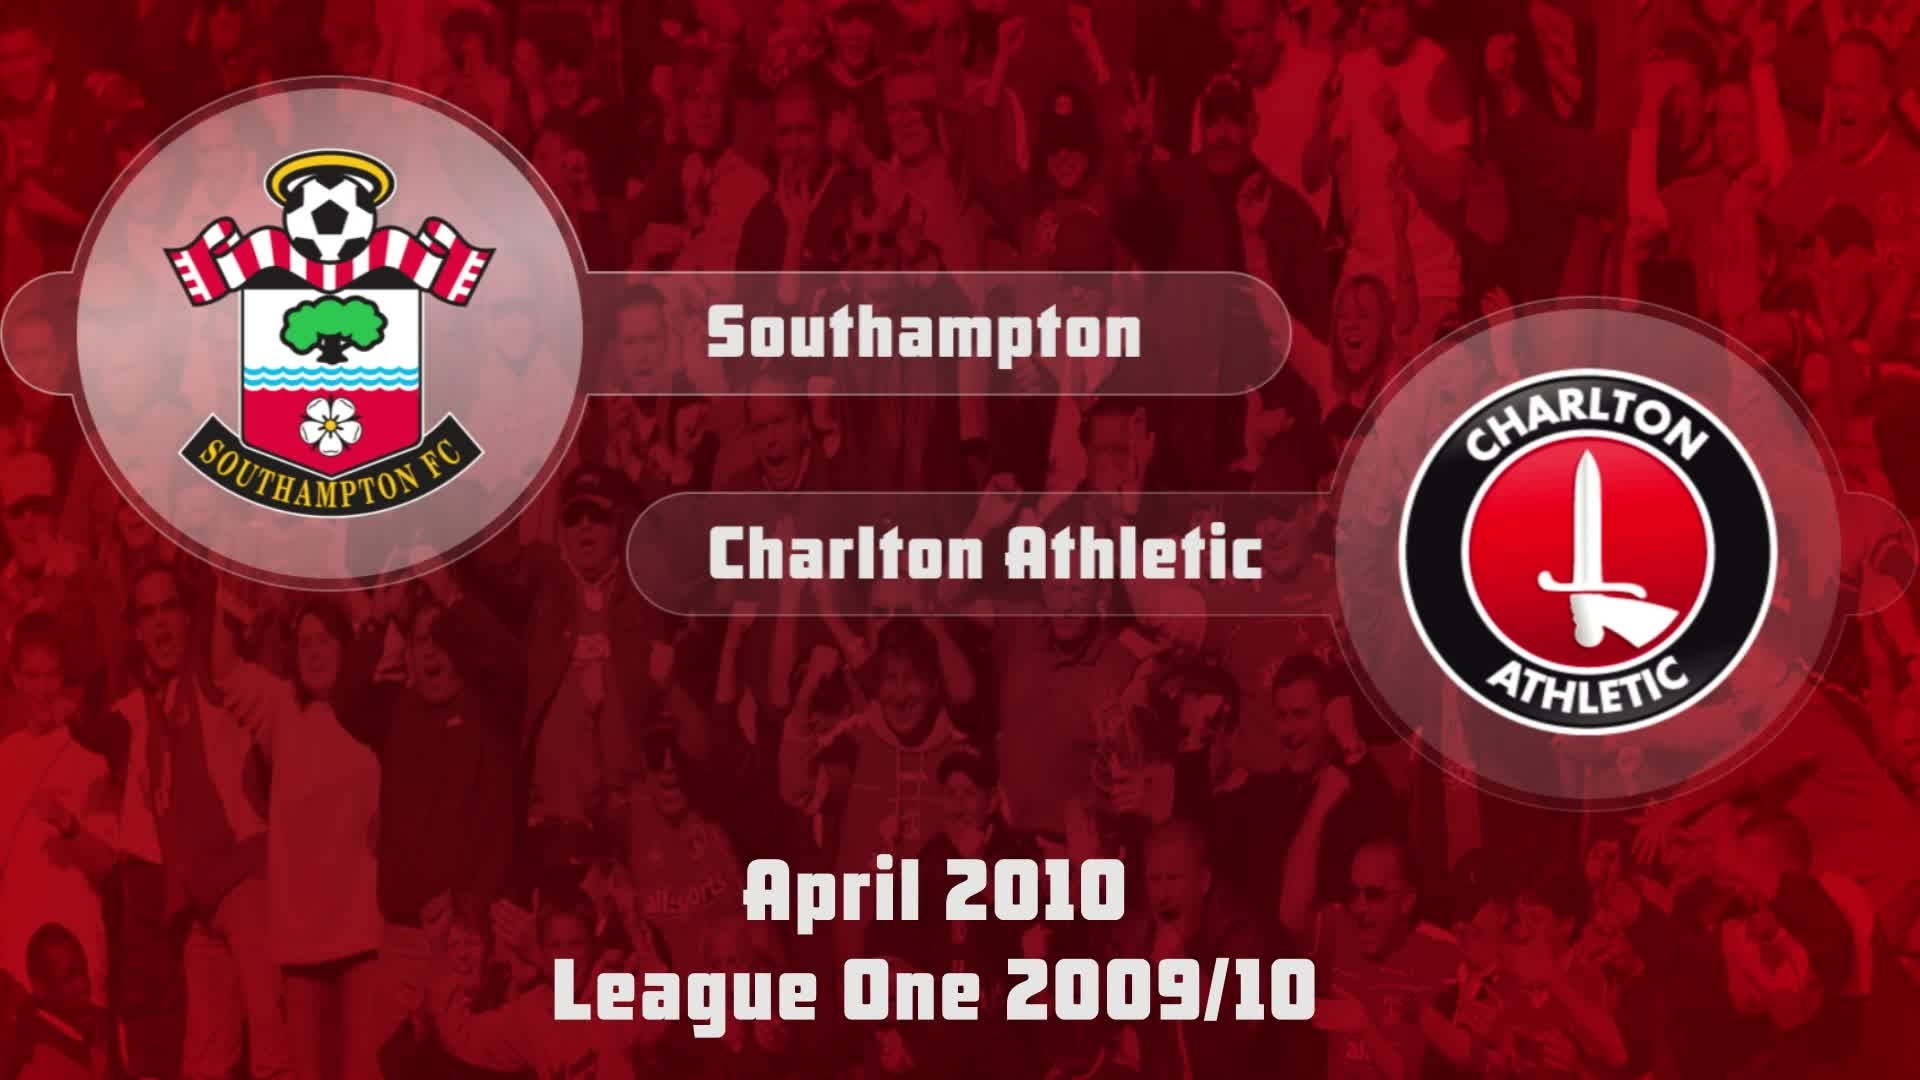 45 HIGHLIGHTS | Southampton 1 Charlton 0 (April 2010)